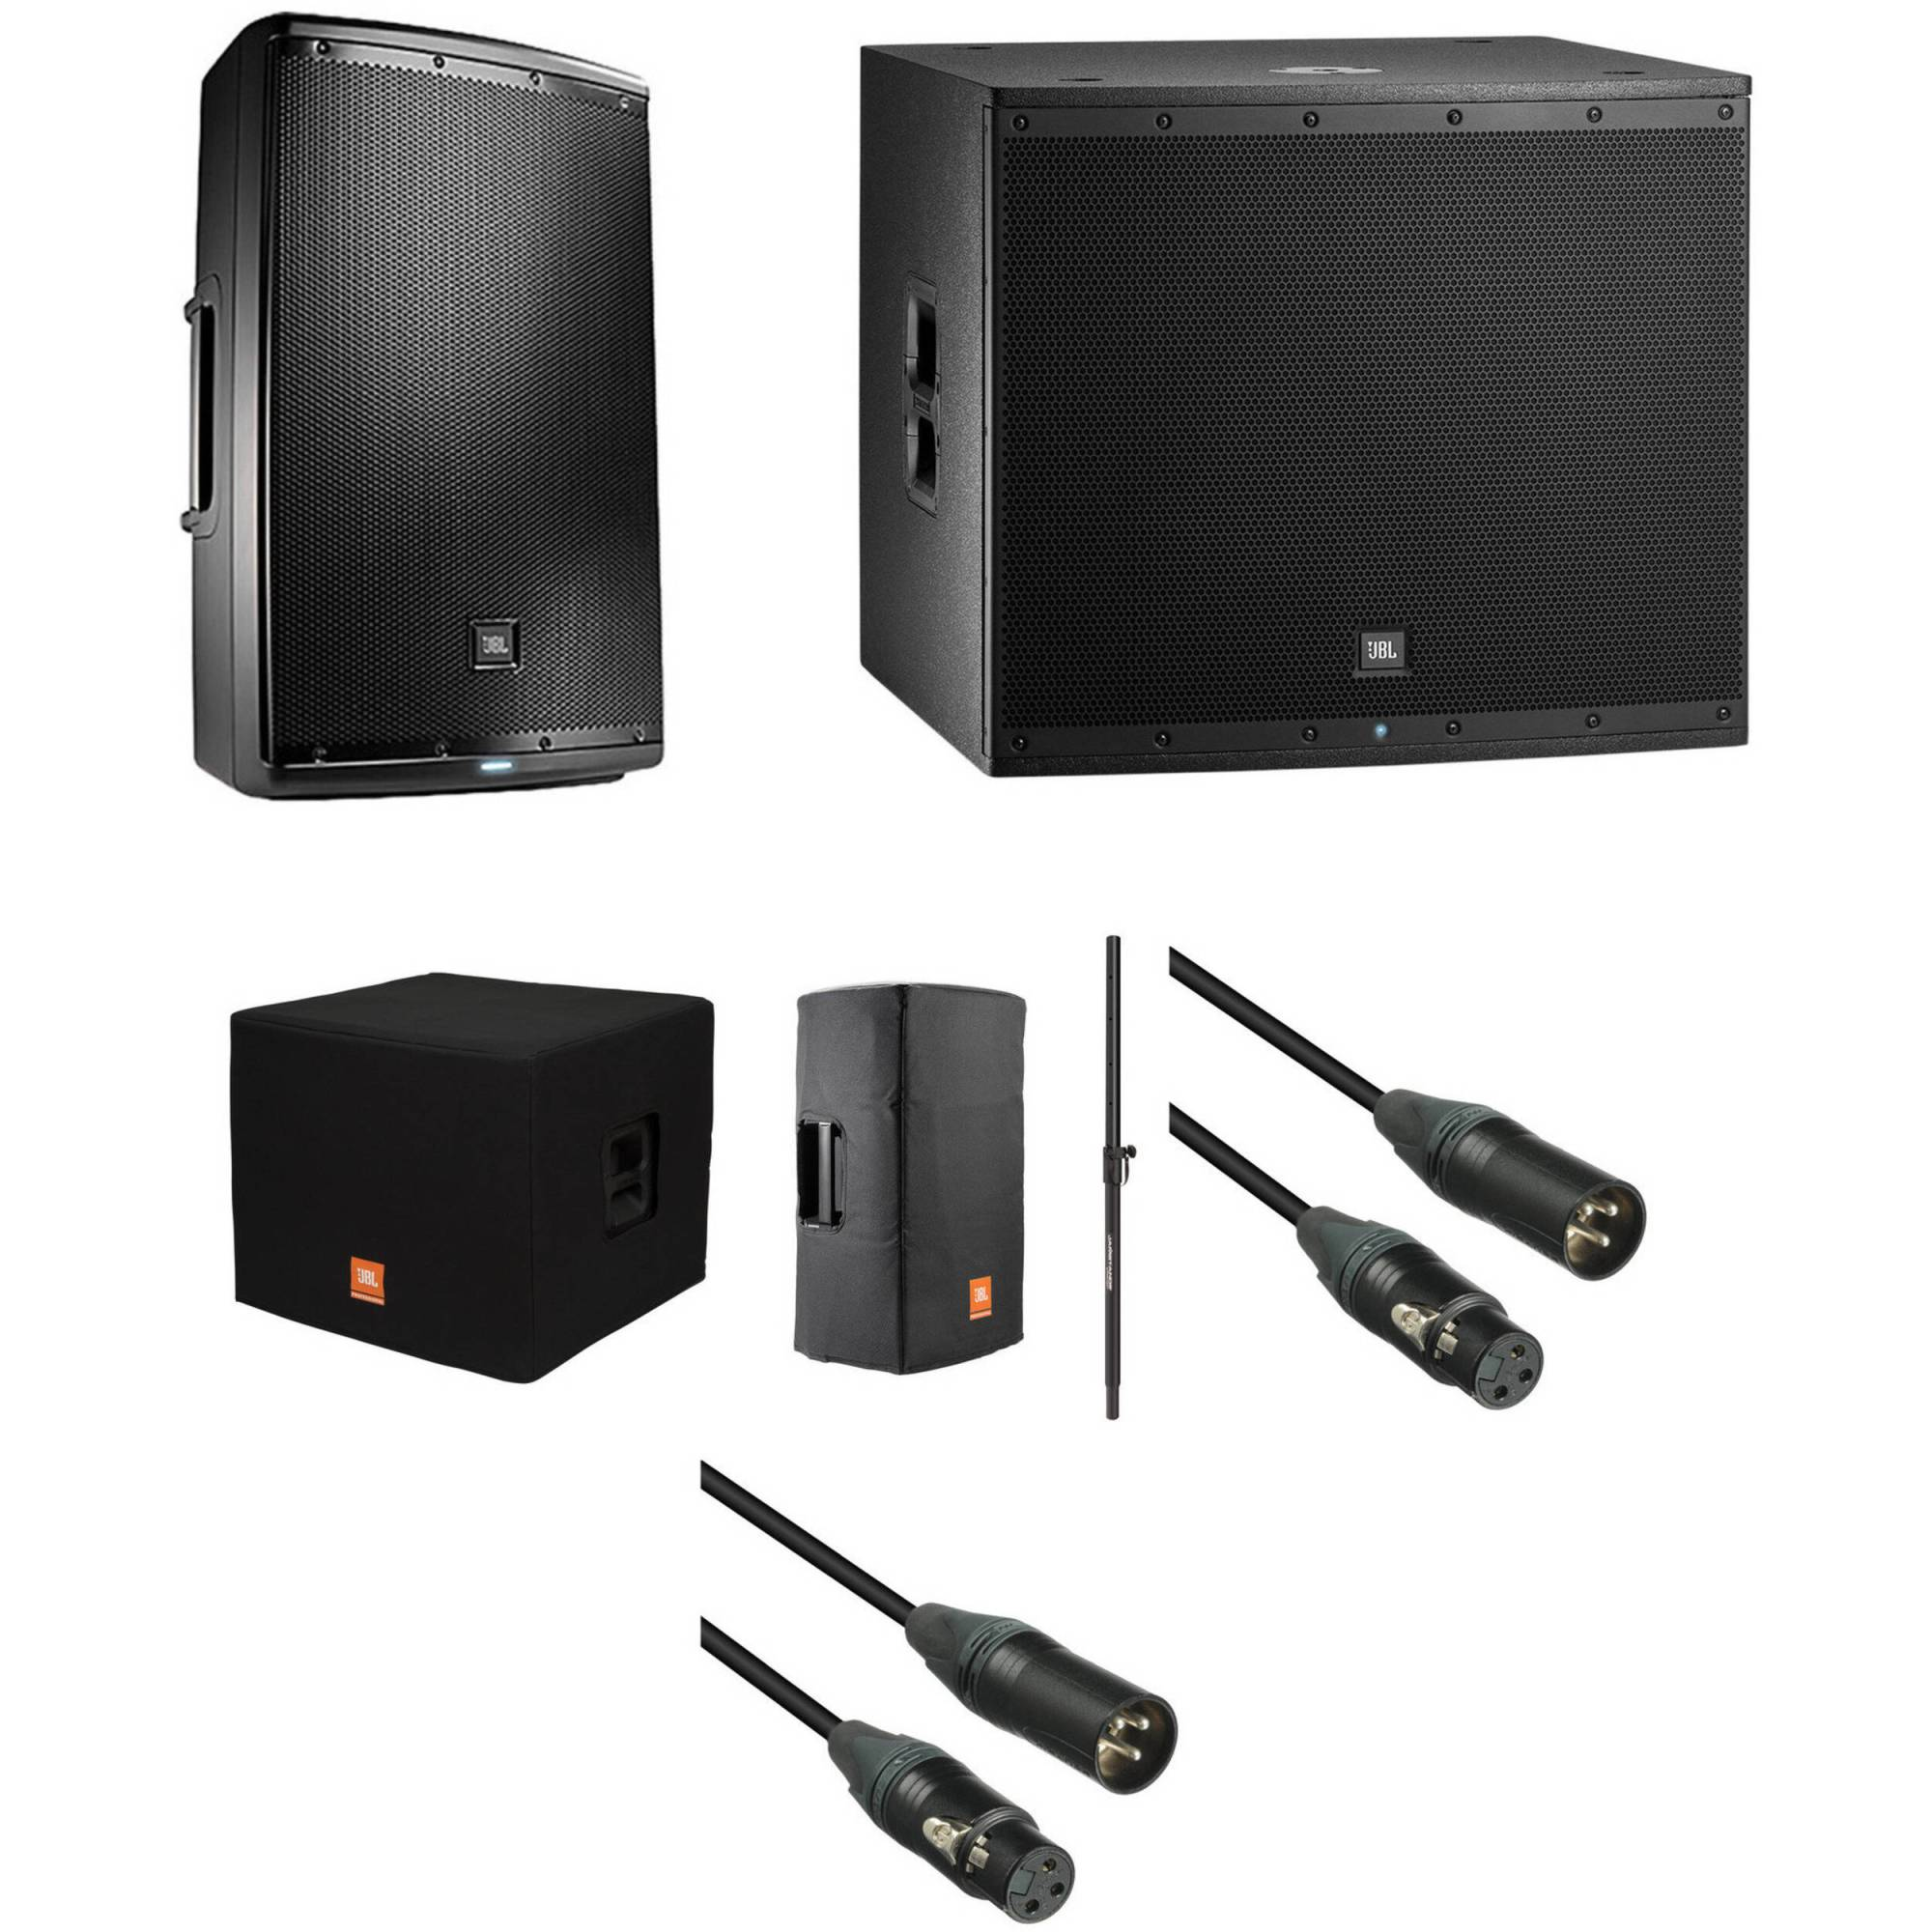 hight resolution of jbl eon powered speaker and subwoofer kit with covers speaker pole and cables